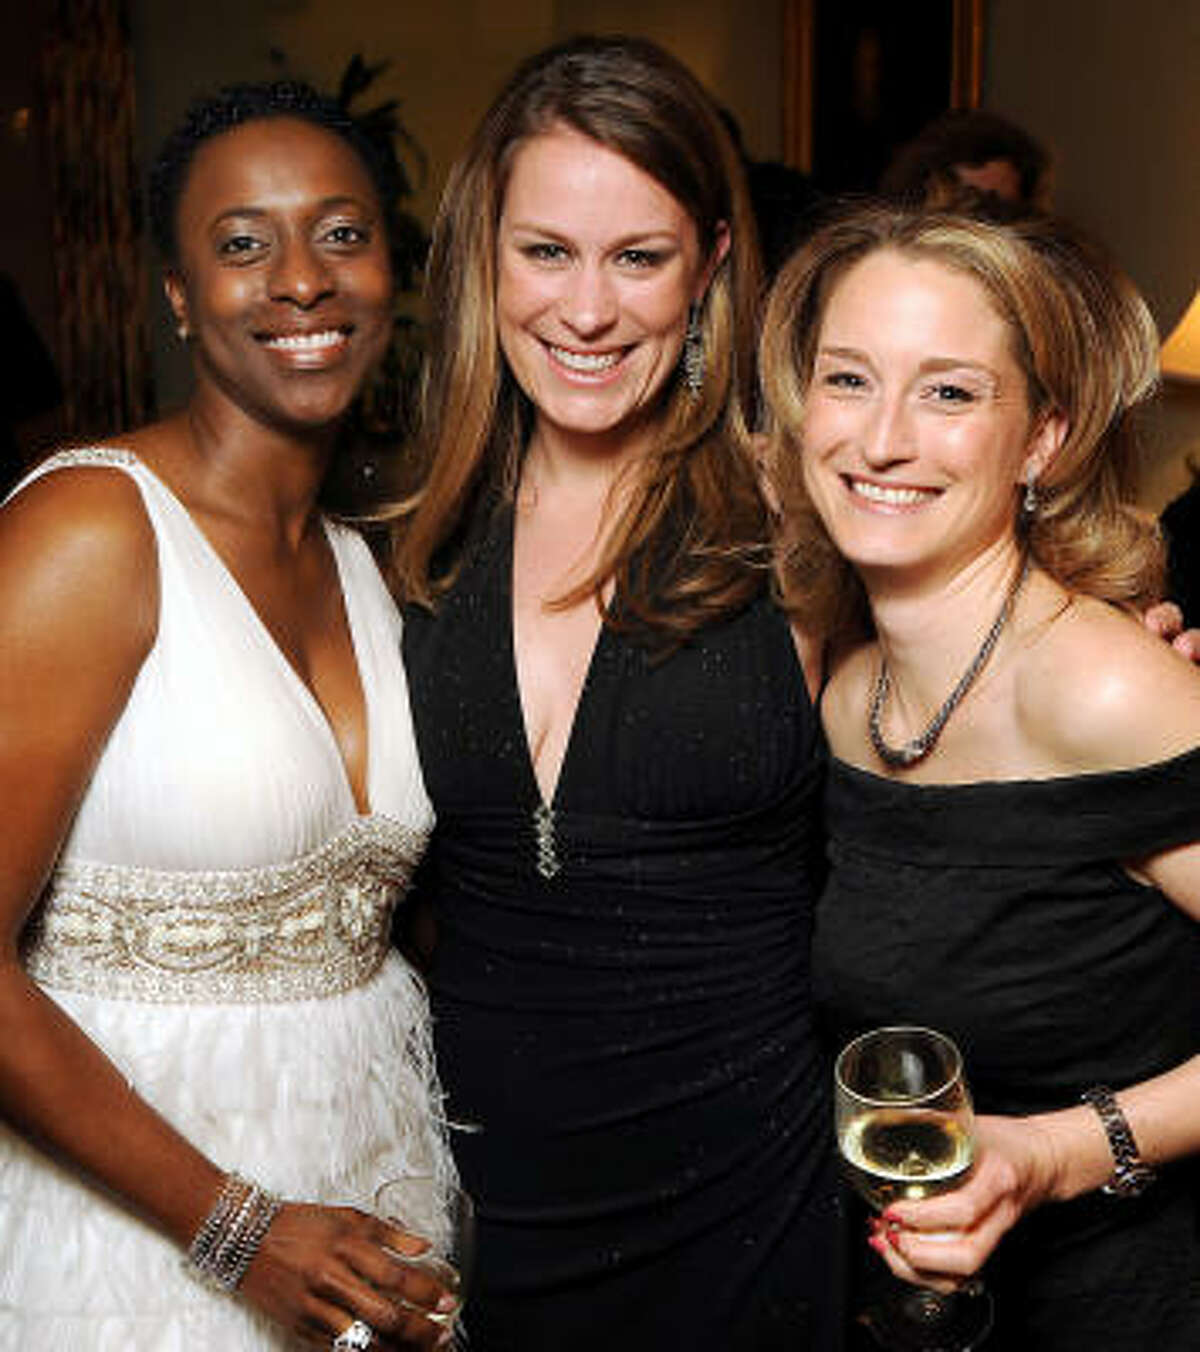 From left: Nicole Walters, Leah MacDougal and Catherine Smith